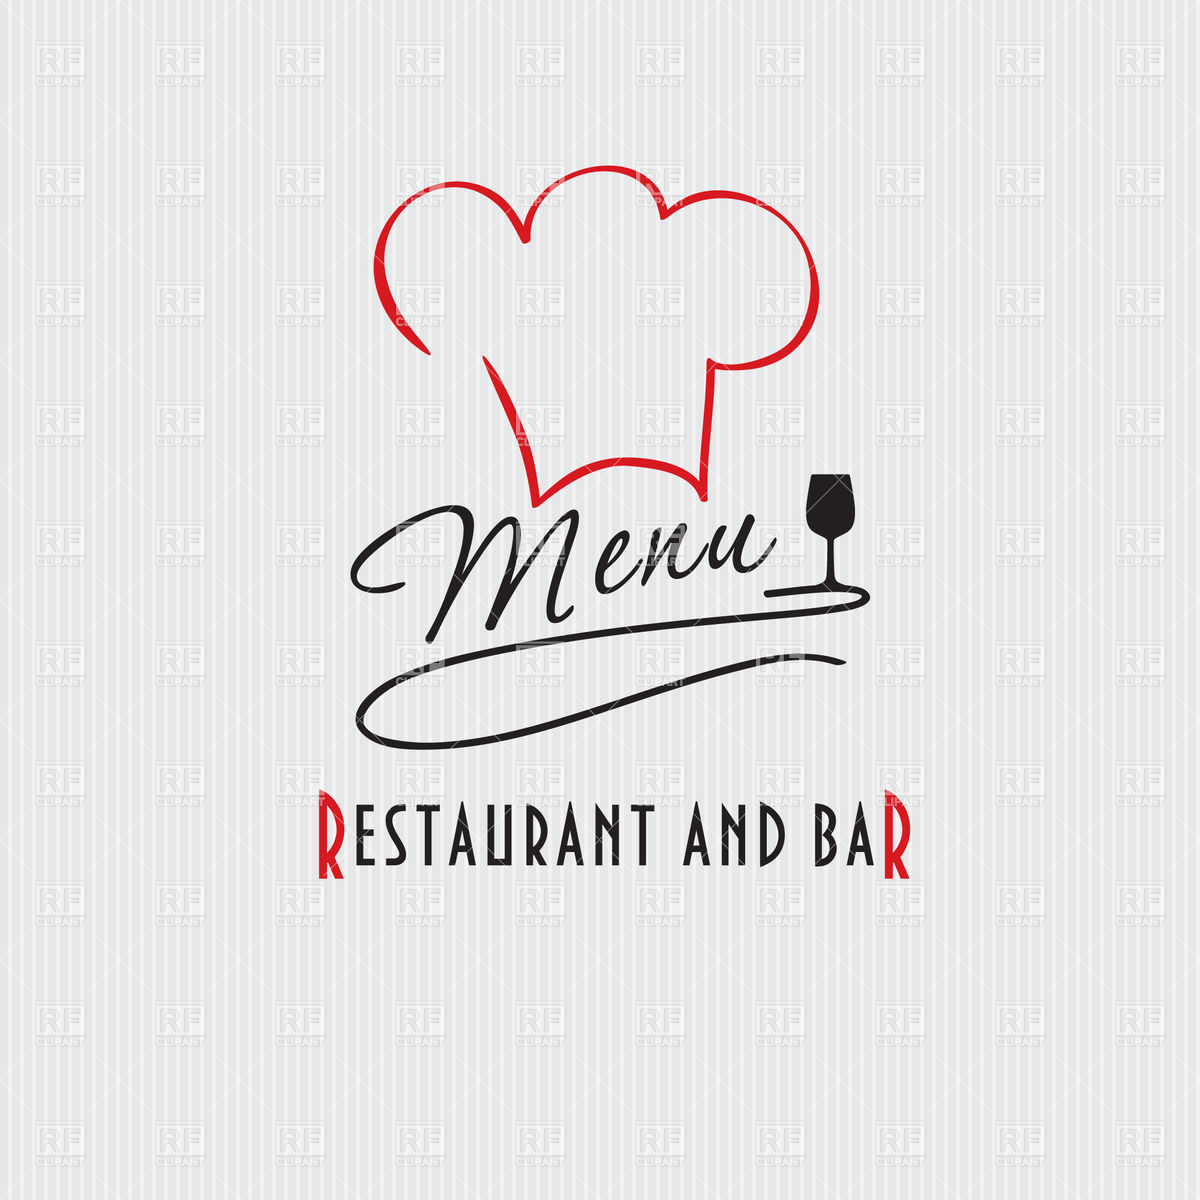 1200x1200 Restaurant And Bar Menu With Chef Hat Vector Image Vector